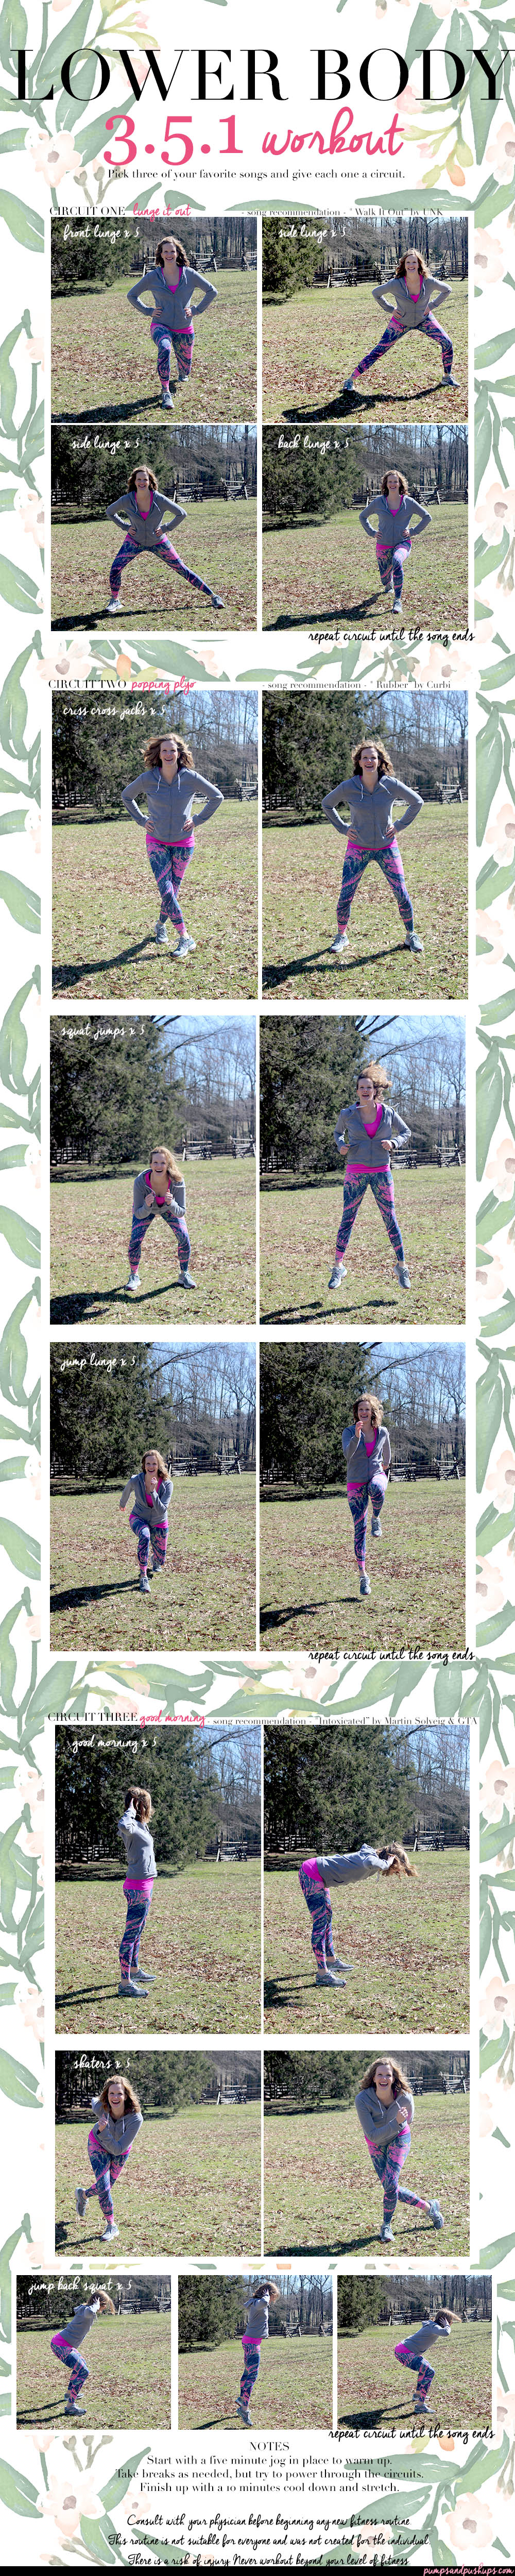 Lower Body Workout 3.5.1. / Dona Jo Fitwear / Pumps and Push-Ups